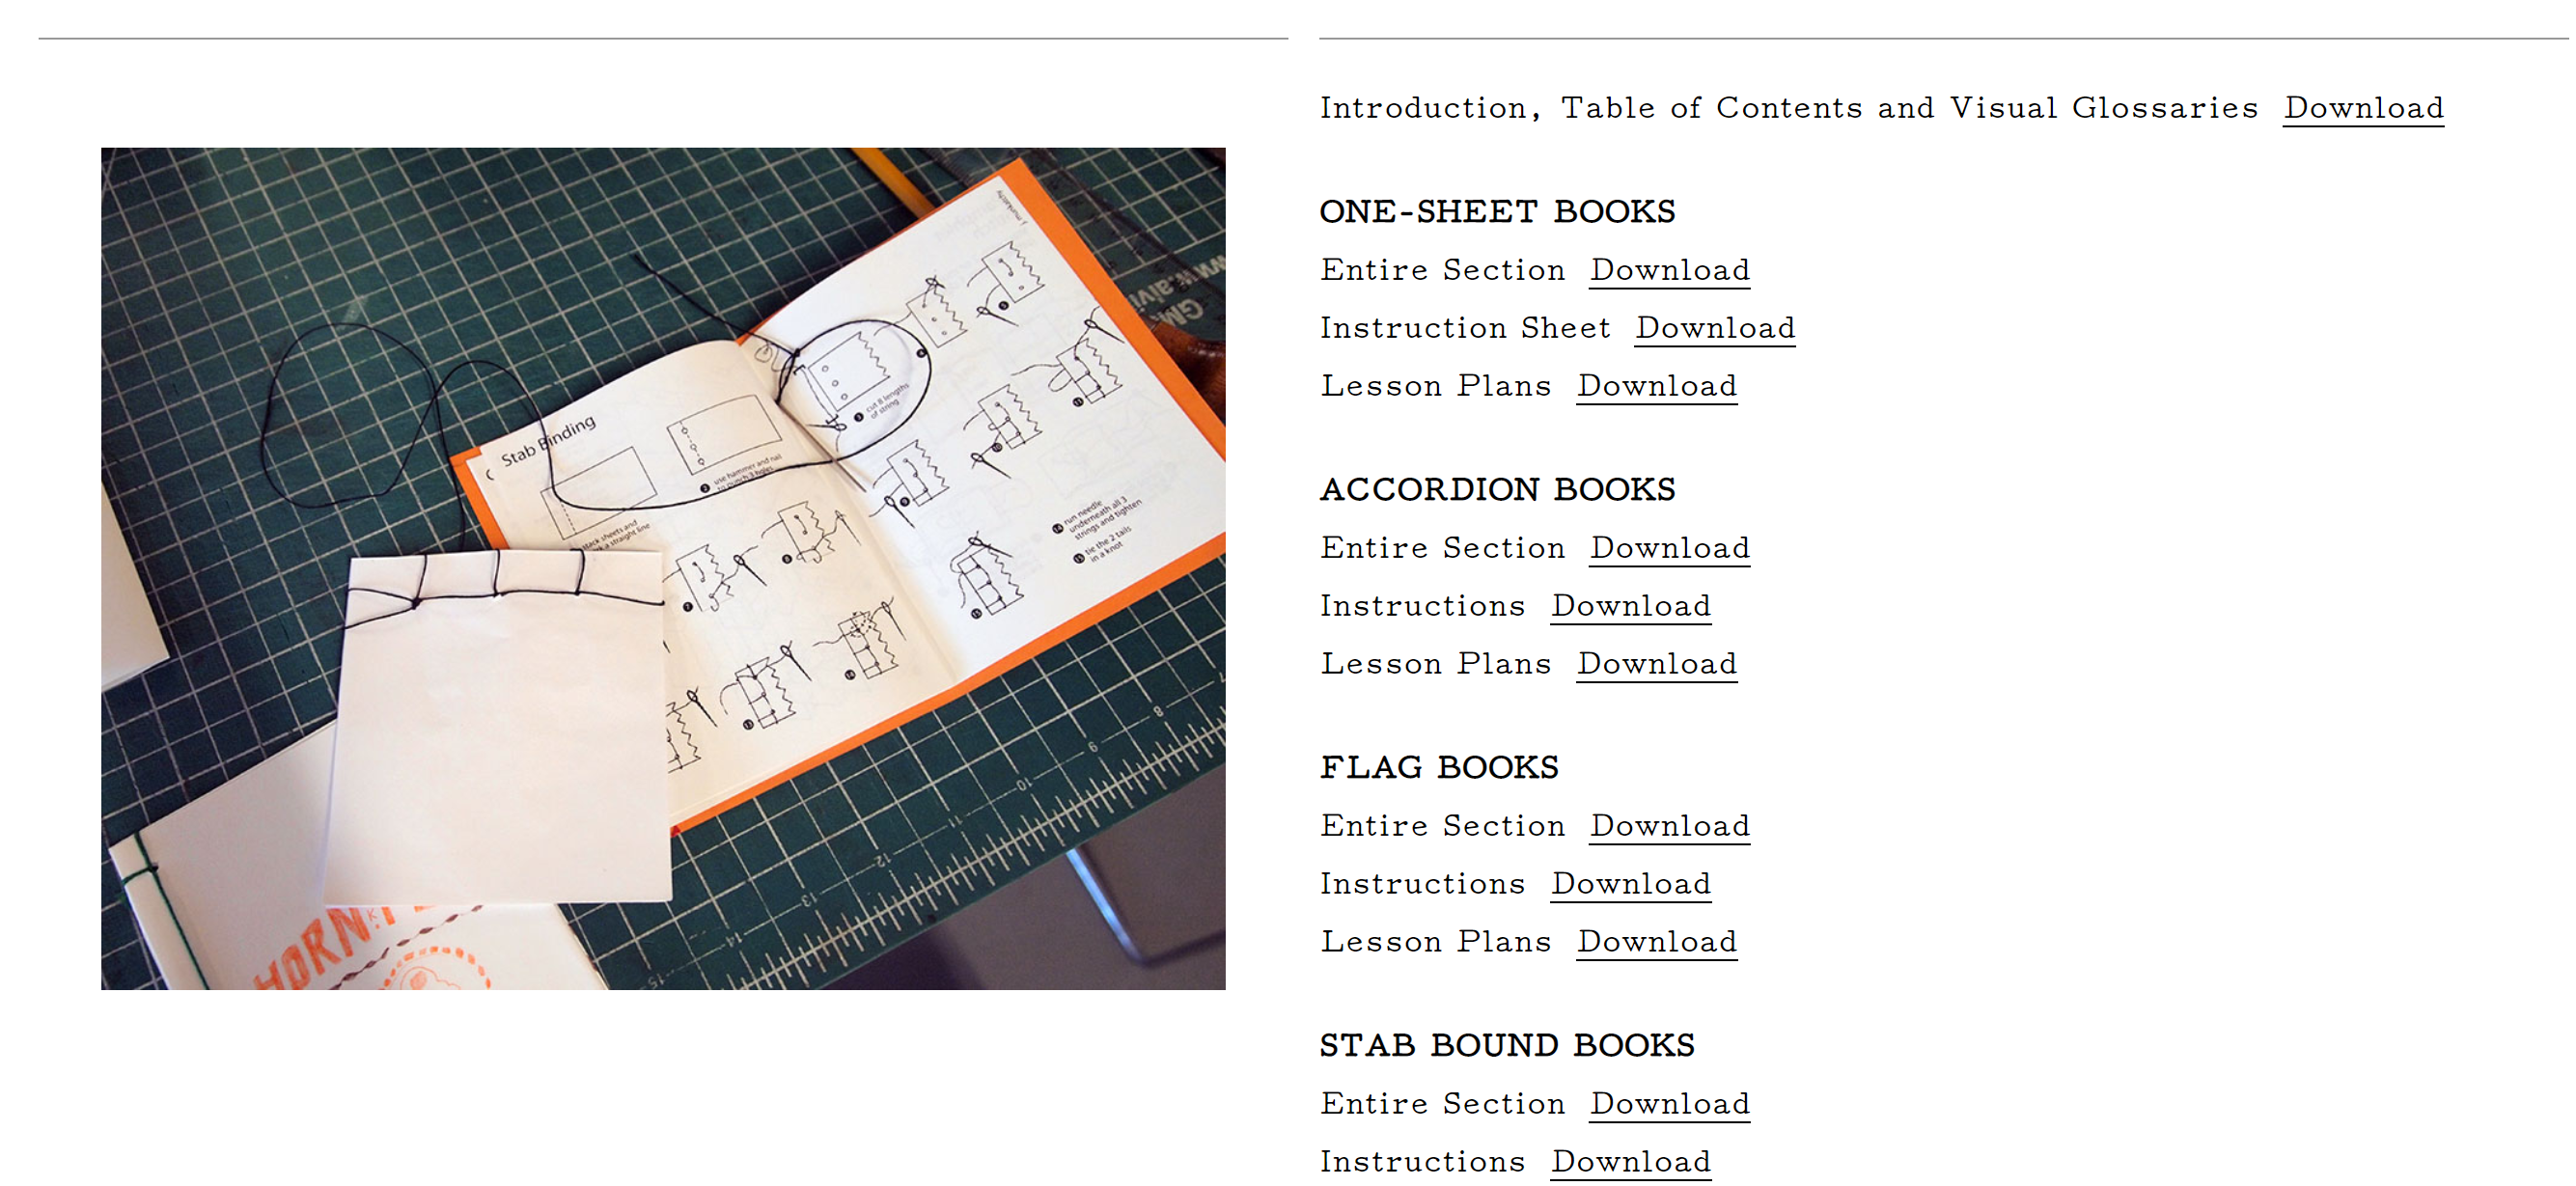 A screenshot of Booklyn's Education Manual which is a page with downloadable instructions for making various kinds of books